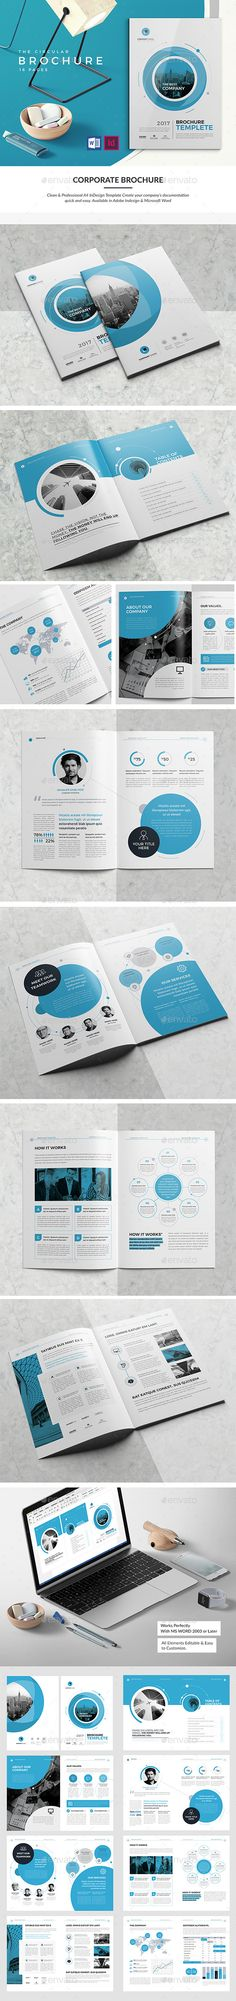 Co Brochure 16 Pages V2 - Corporate Brochures